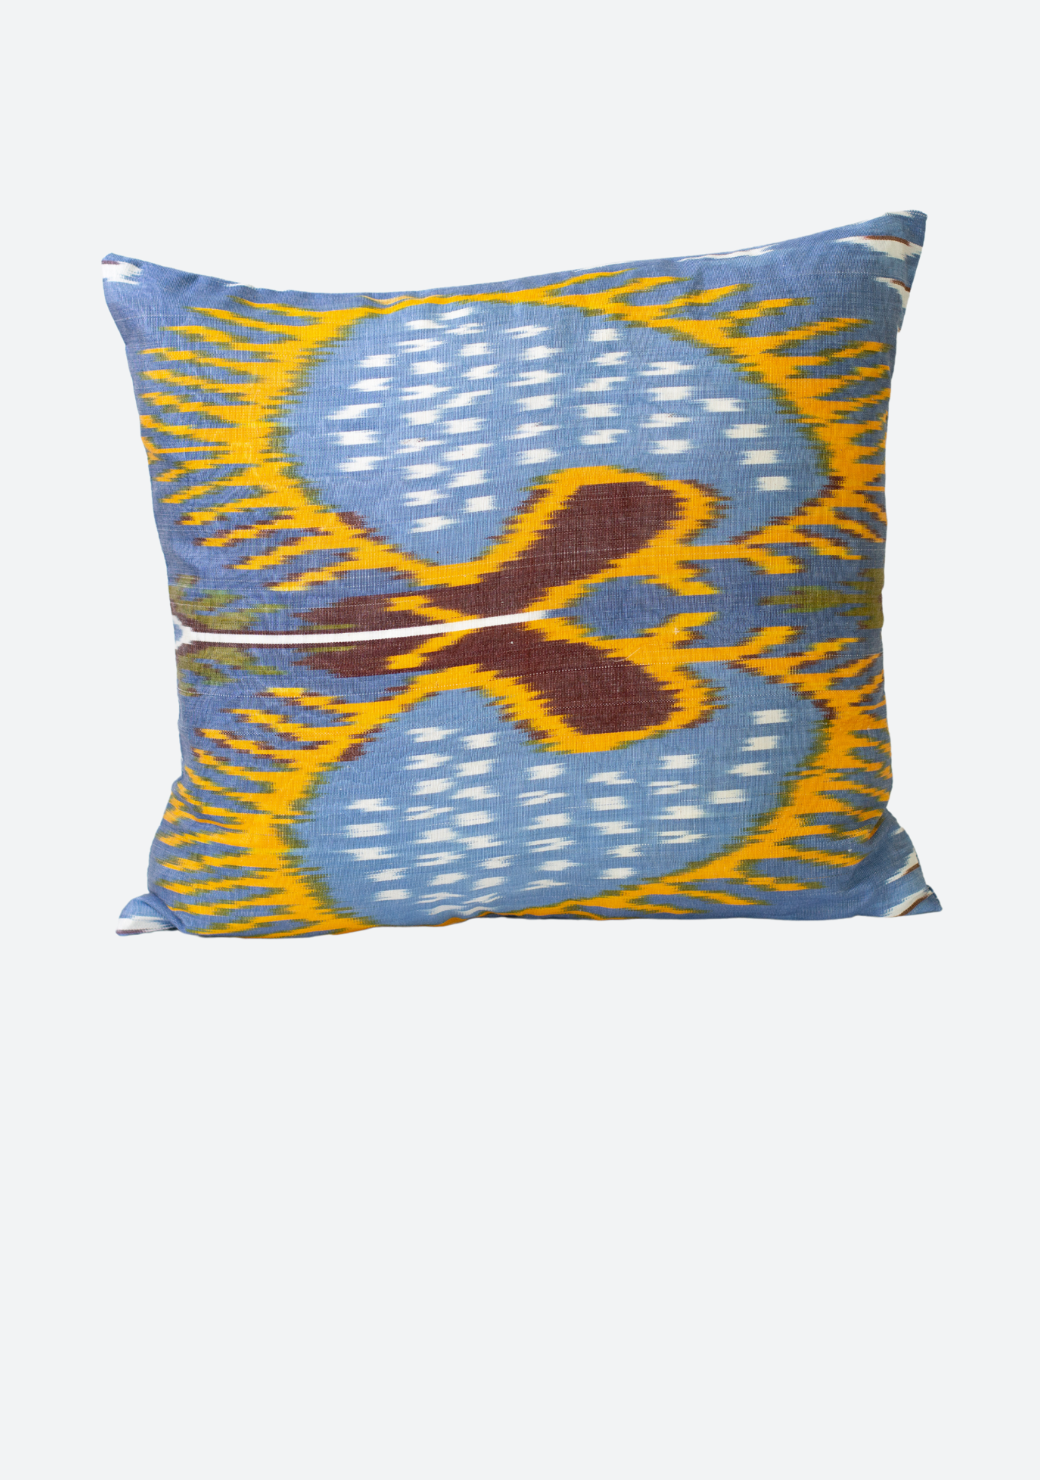 Small Cushion Cover in Blue and Yellow